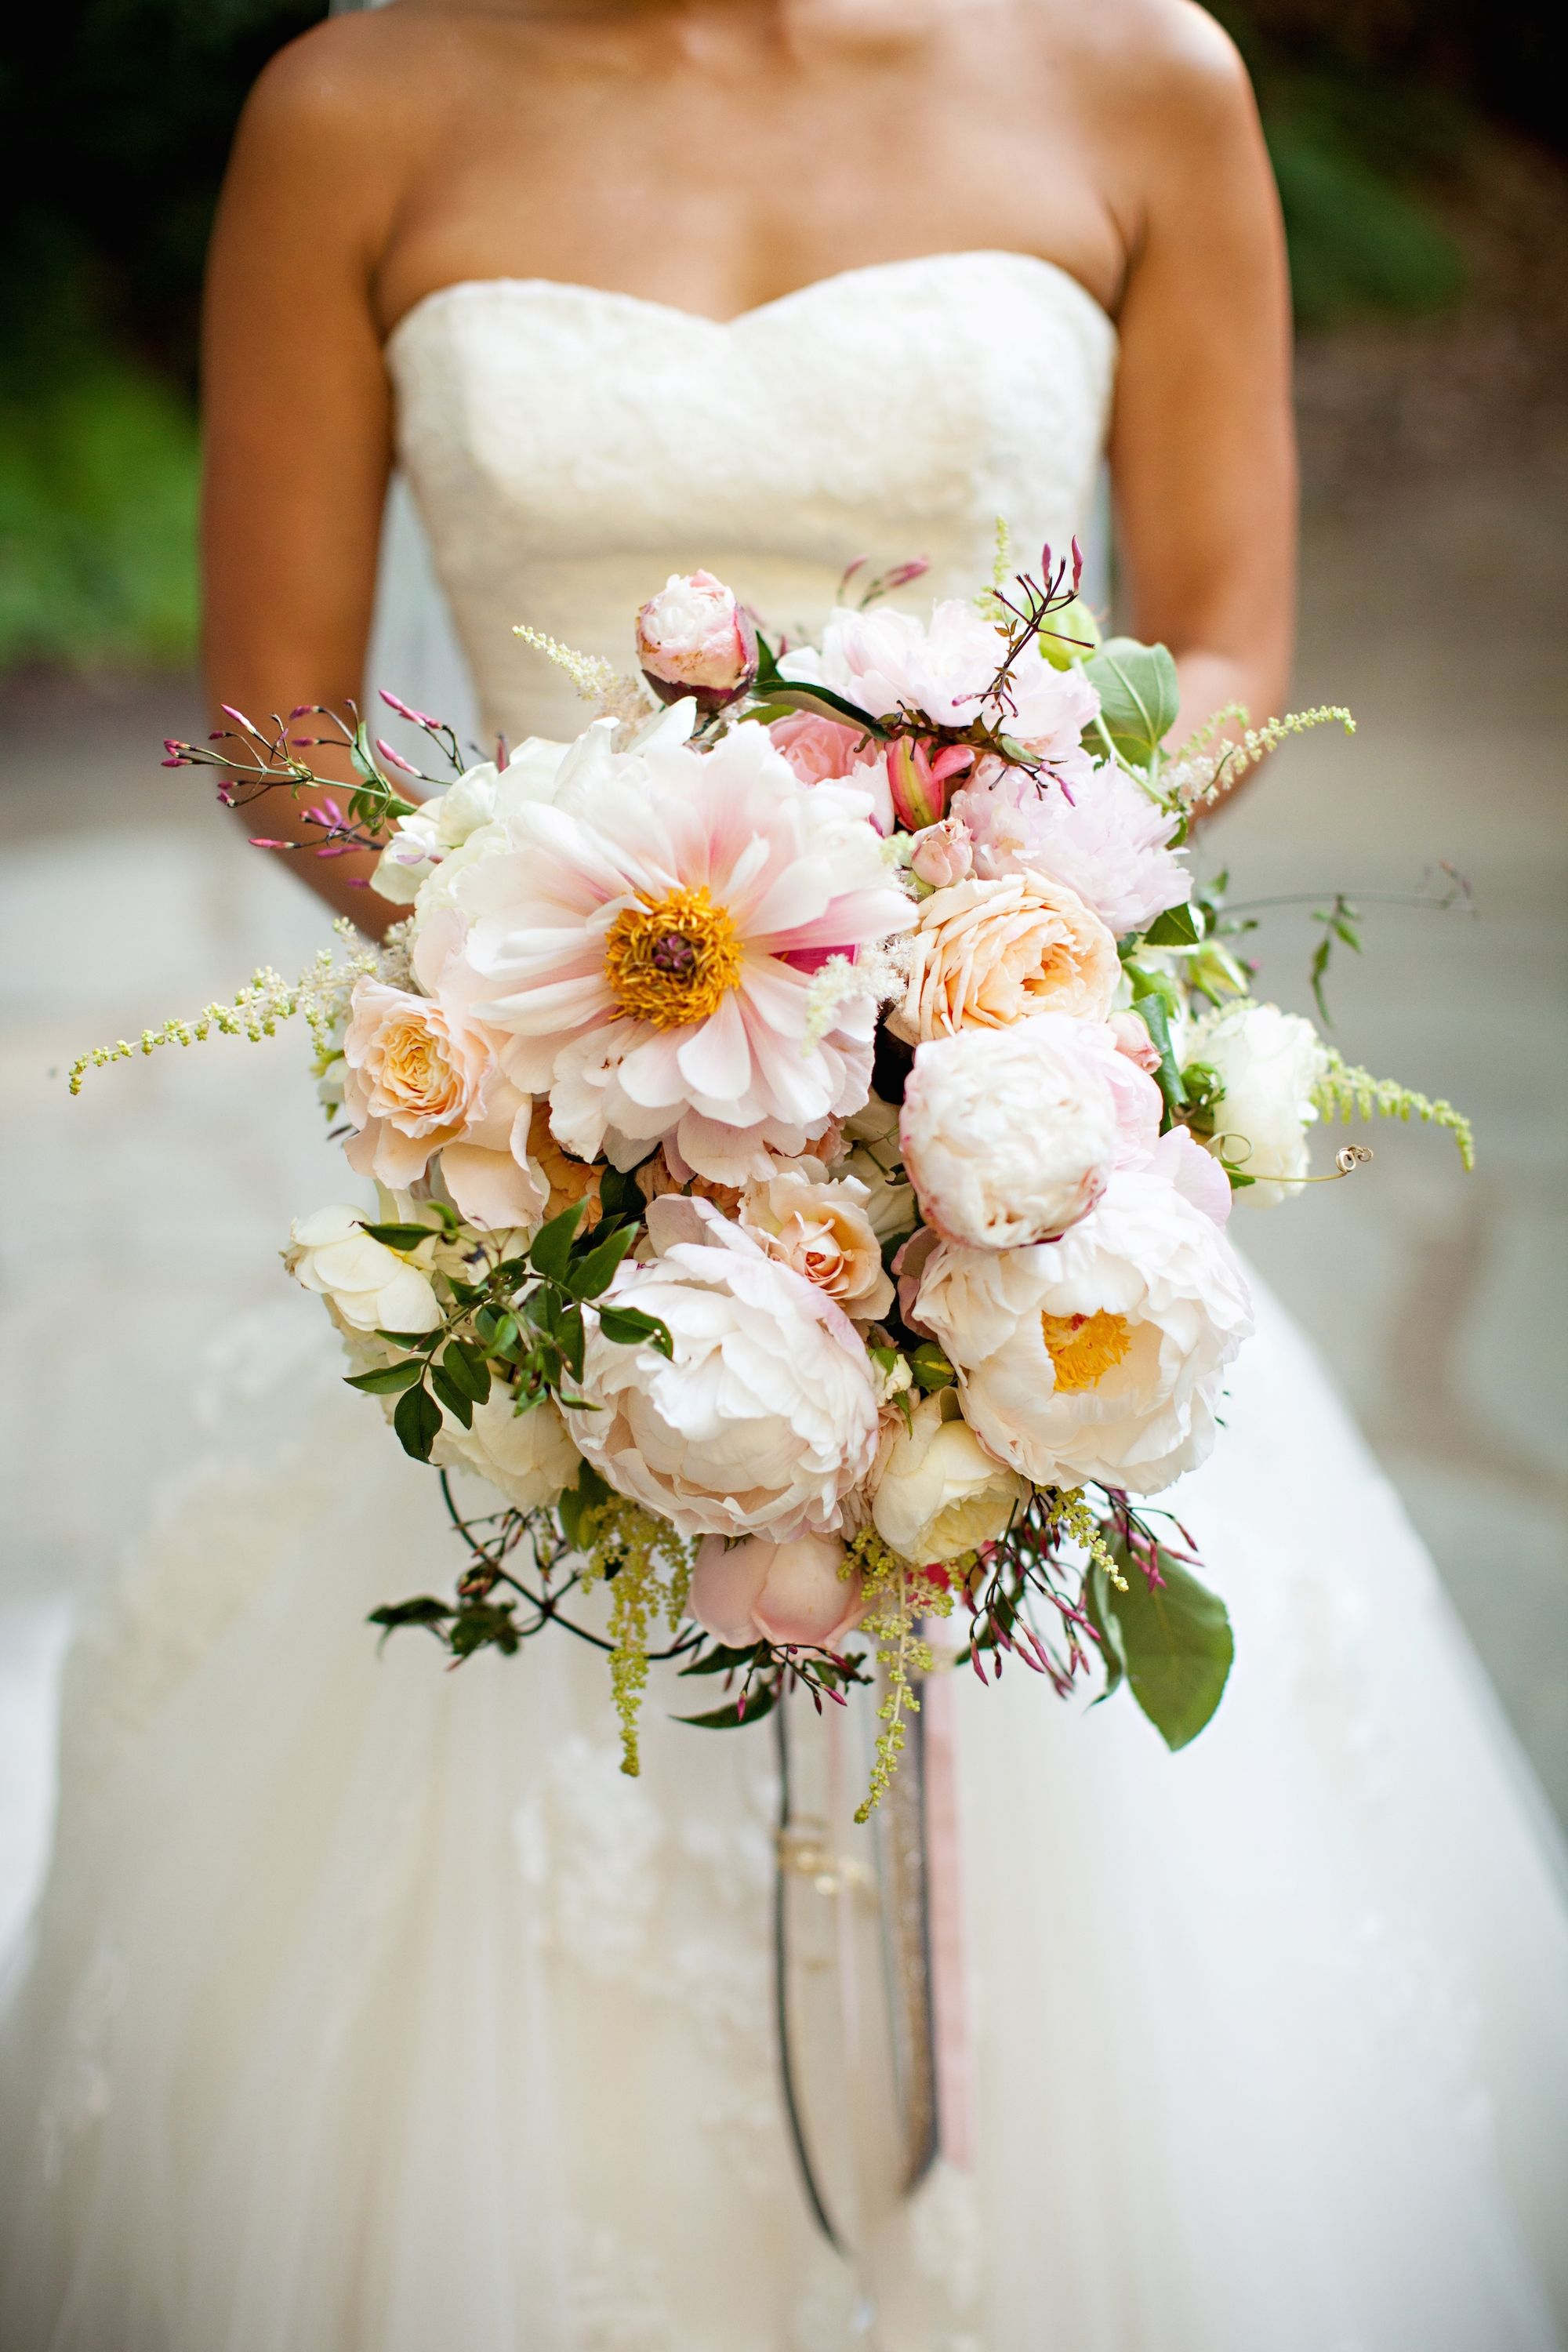 30 best wedding flower bouquets chic ideas for bridal flower 30 best wedding flower bouquets chic ideas for bridal flower arrangements izmirmasajfo